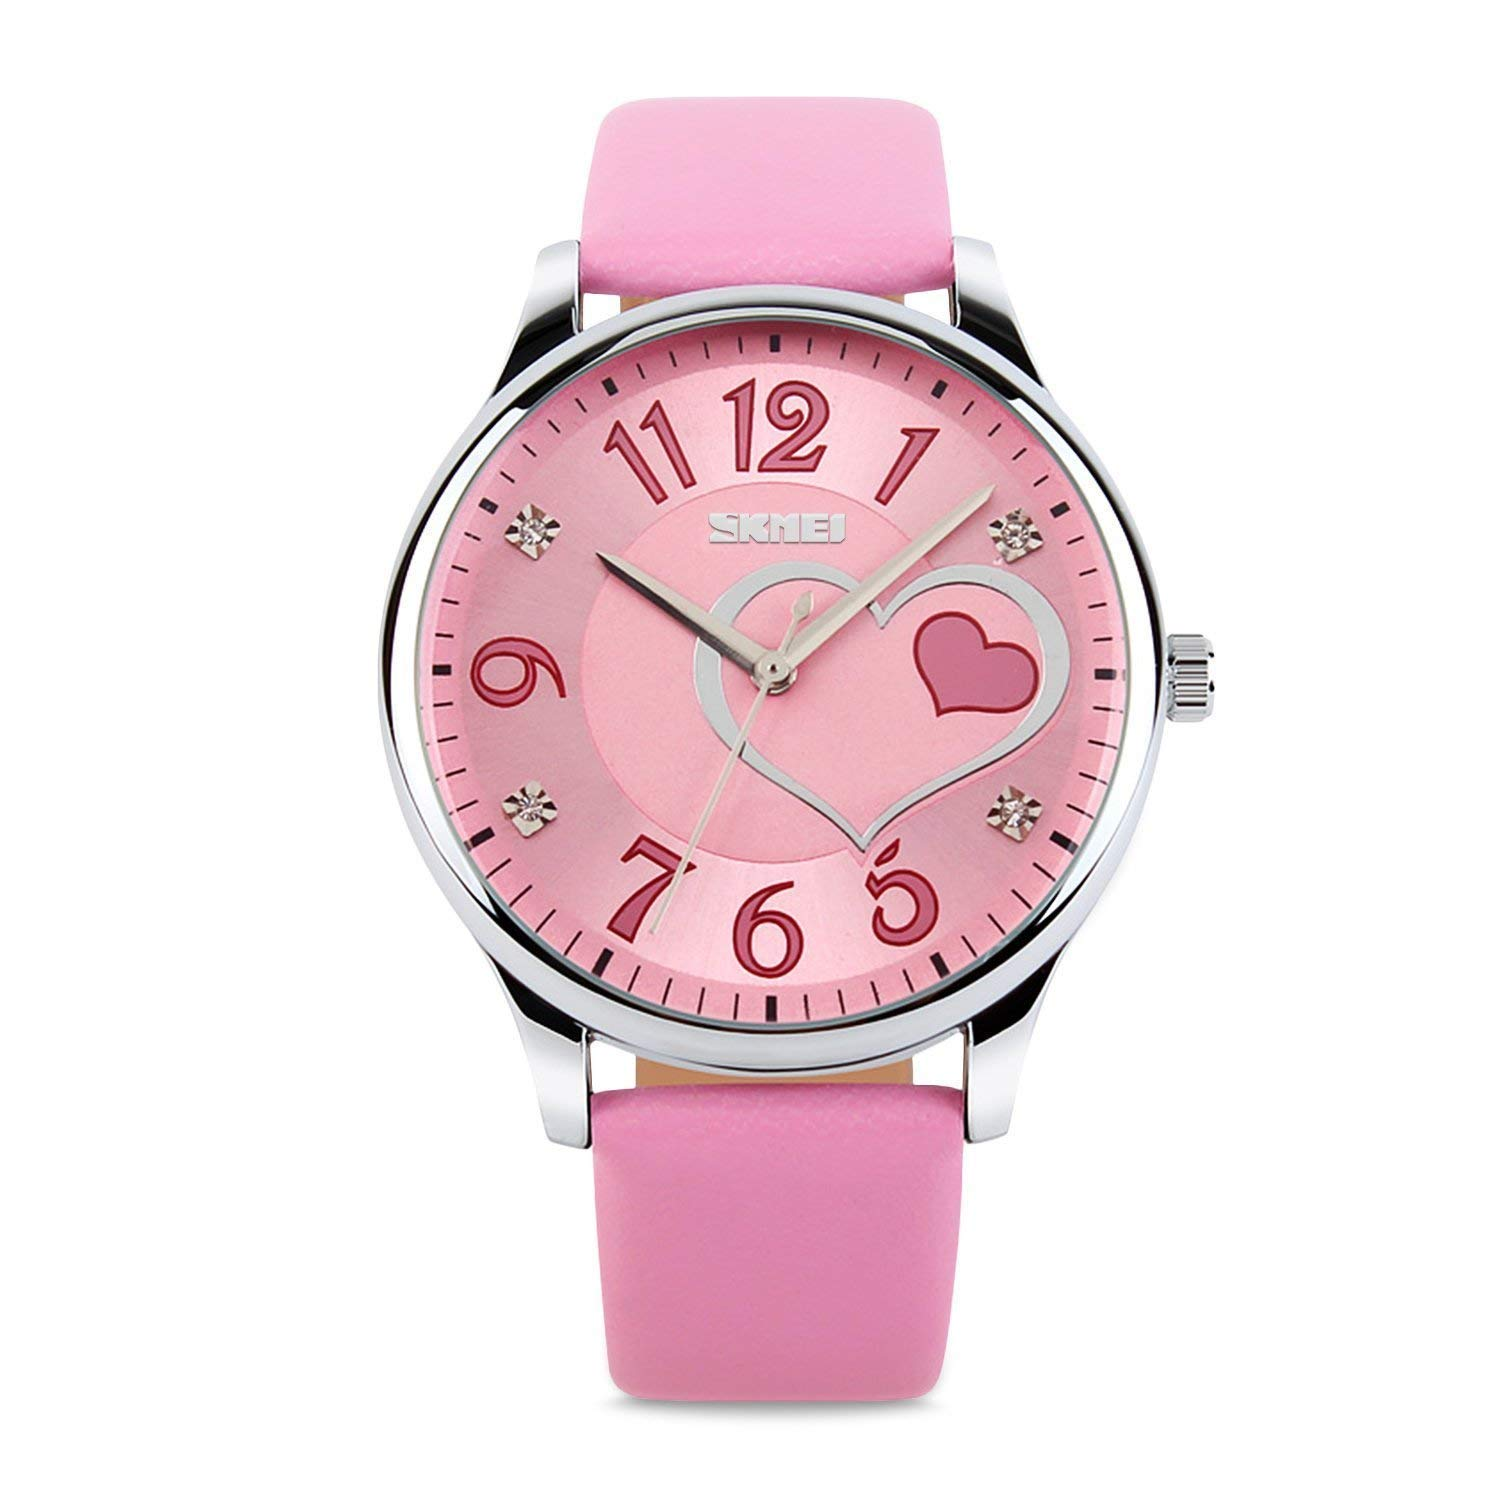 7a0bf04cb3 Amazon.com: IJAHWRS Girls Analog Watch, Fashion Lady Quartz Wrist Watch  Leather Strap Big Face Fun Cute Watches with Lovely Heart Shape Water  Resistant ...